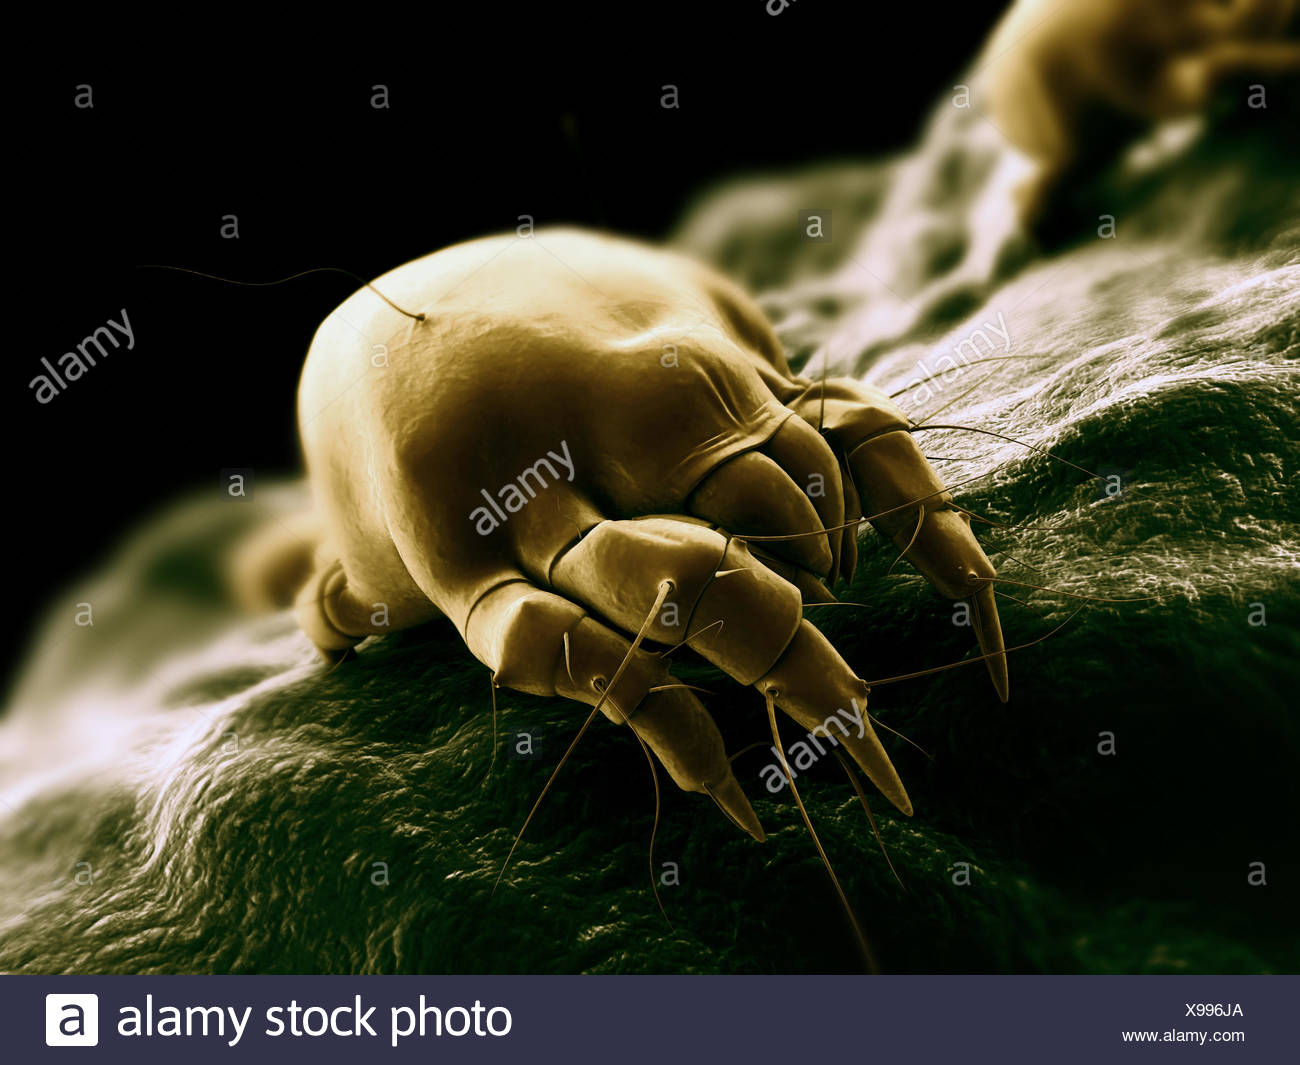 insect dust hygiene - Stock Image